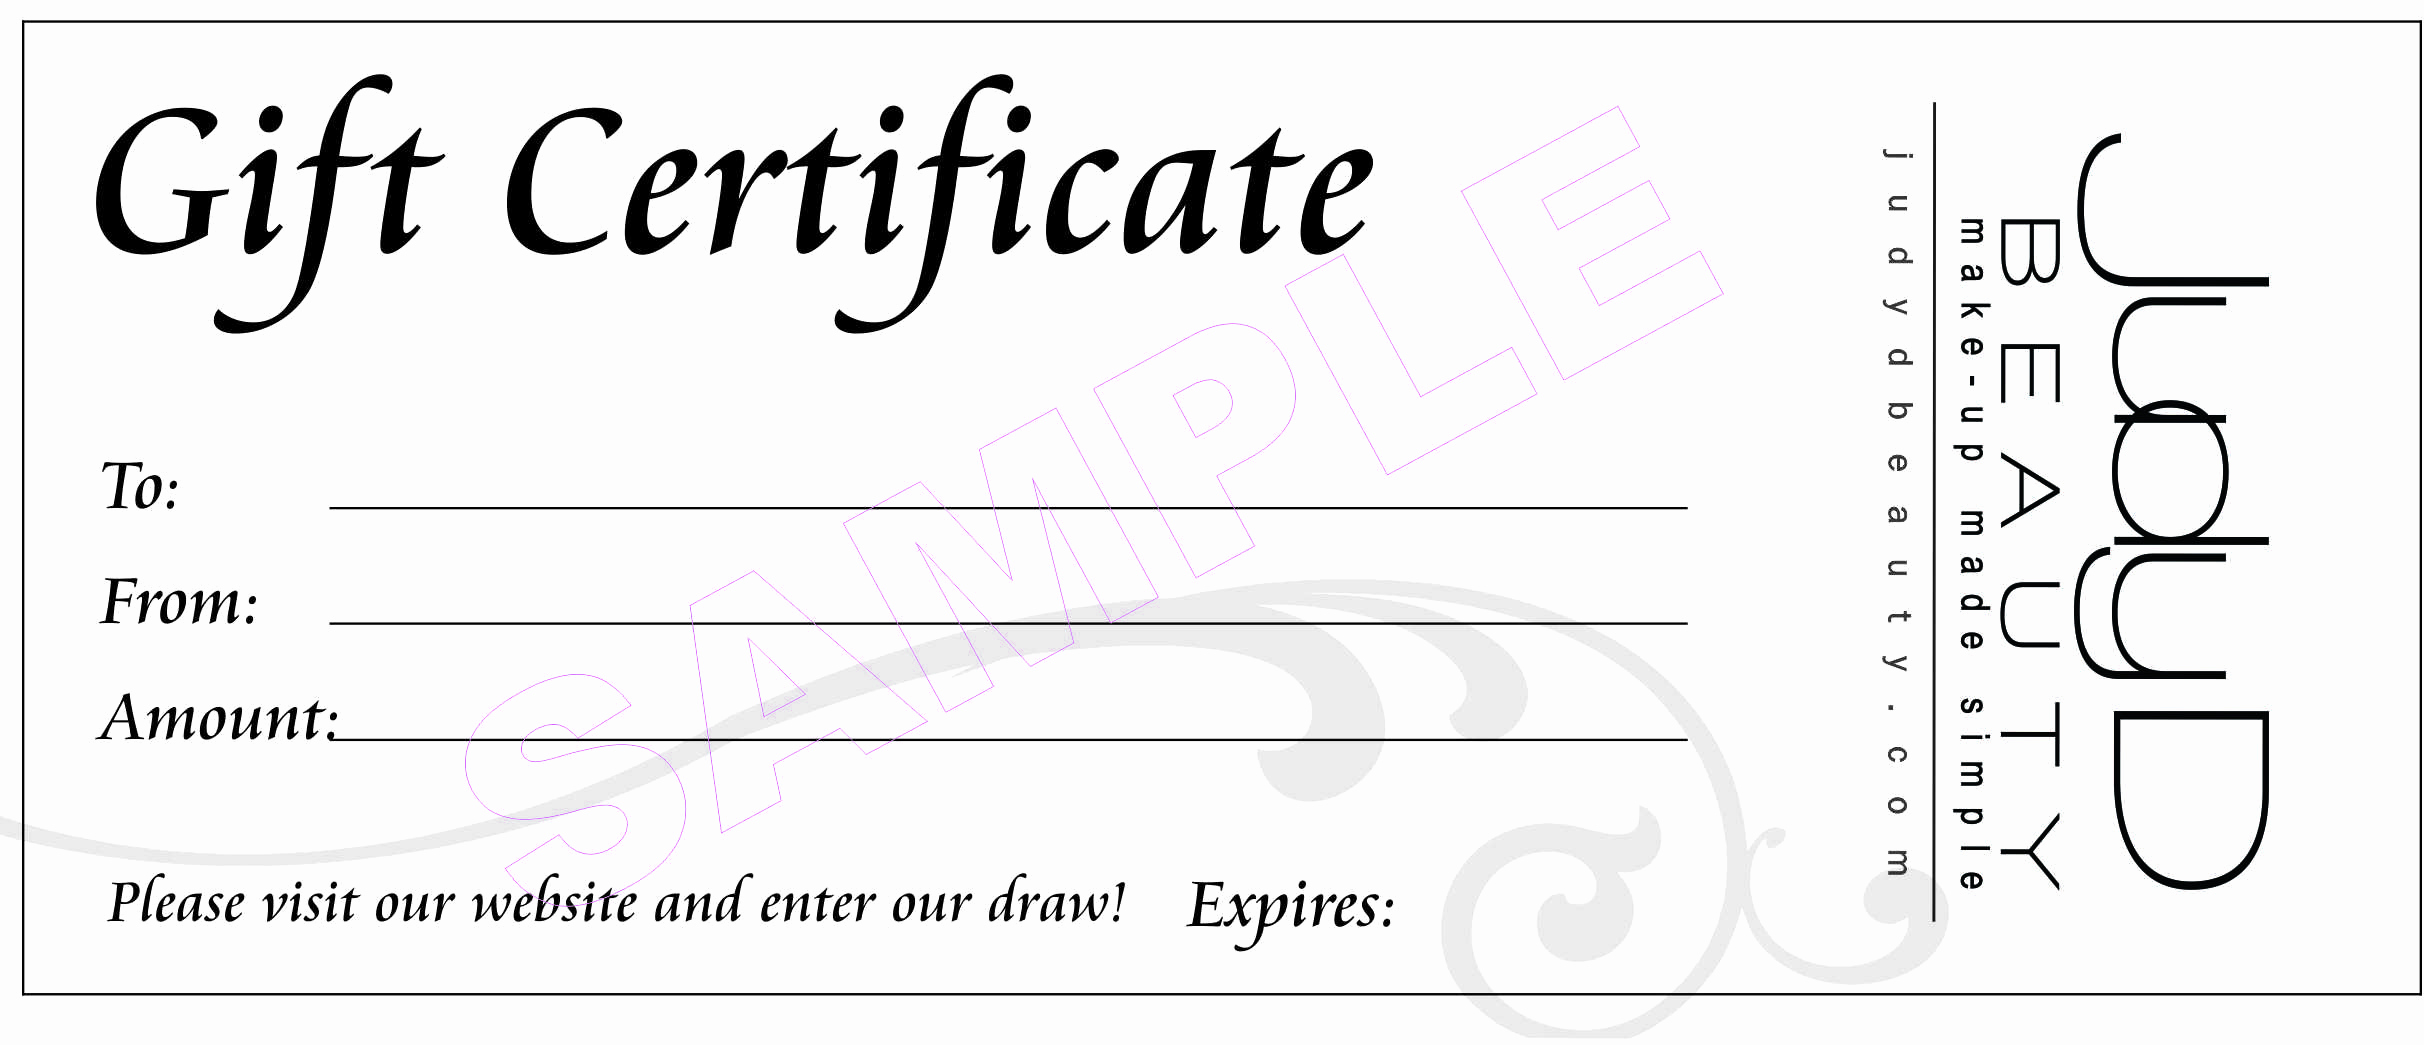 Free Printable Gift Certificate Templates Best Of 18 Gift Certificate Templates Excel Pdf formats